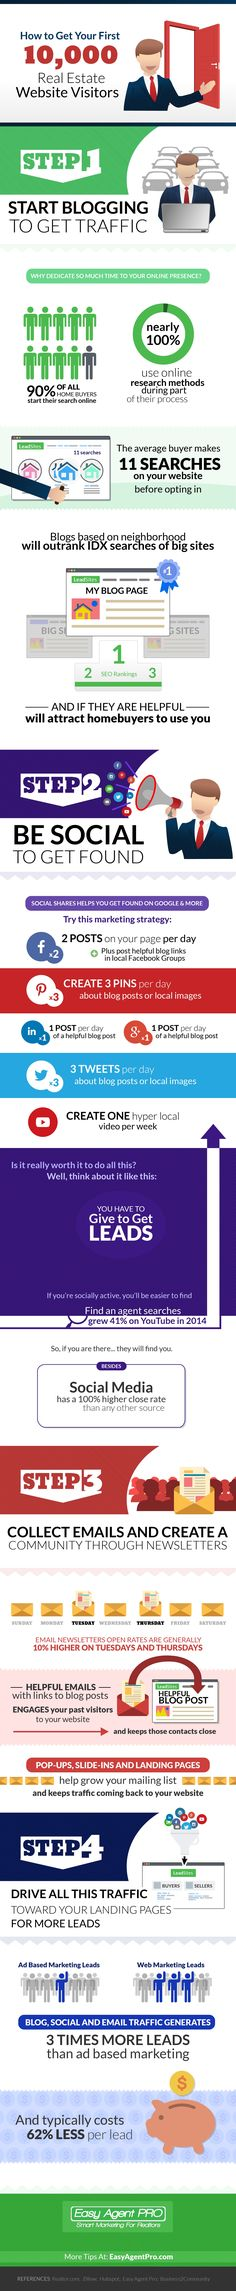 #INFOGRAPHIC: Getting 10,000 Visitors to Your #RealEstate Website | @easyagentpro